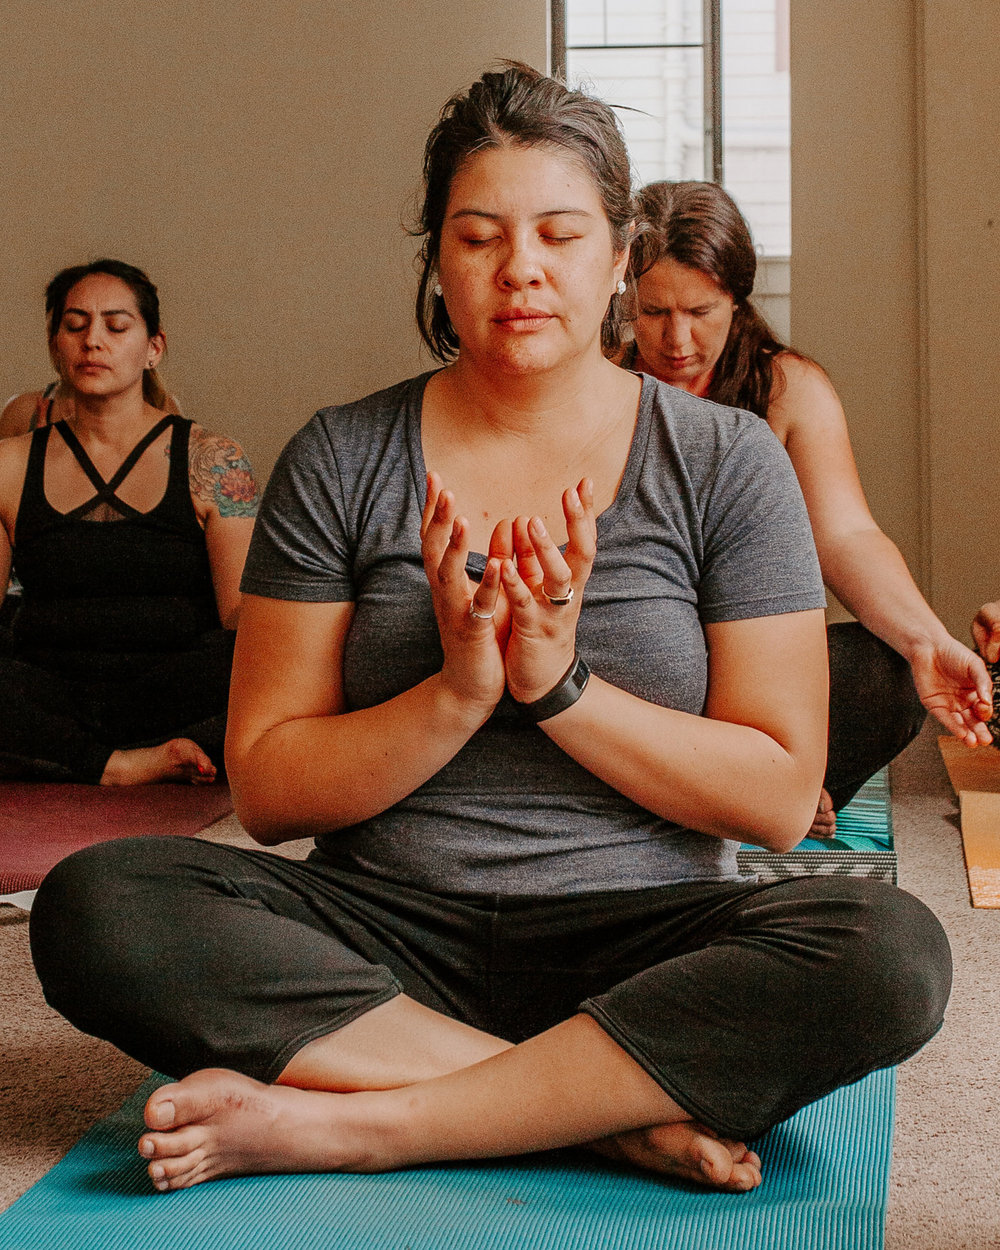 women meditating in lotus pose of yoga during self0care event by kim baker beauty san jose california makeup artist photo by catie belle photography